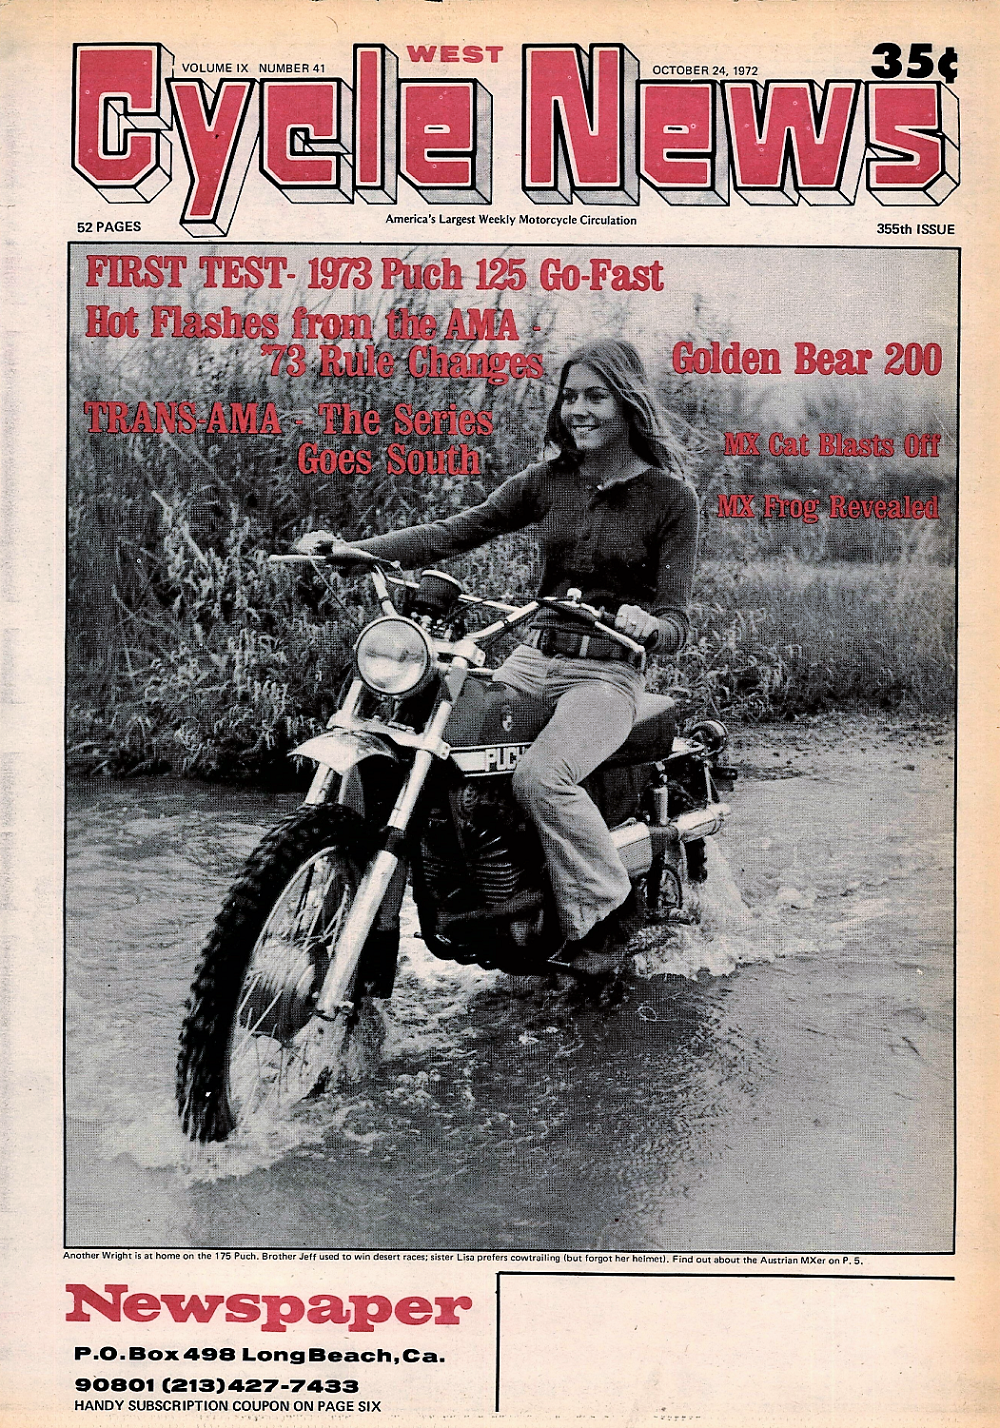 1972 Puch 125 Motorcross road test.1.jpg